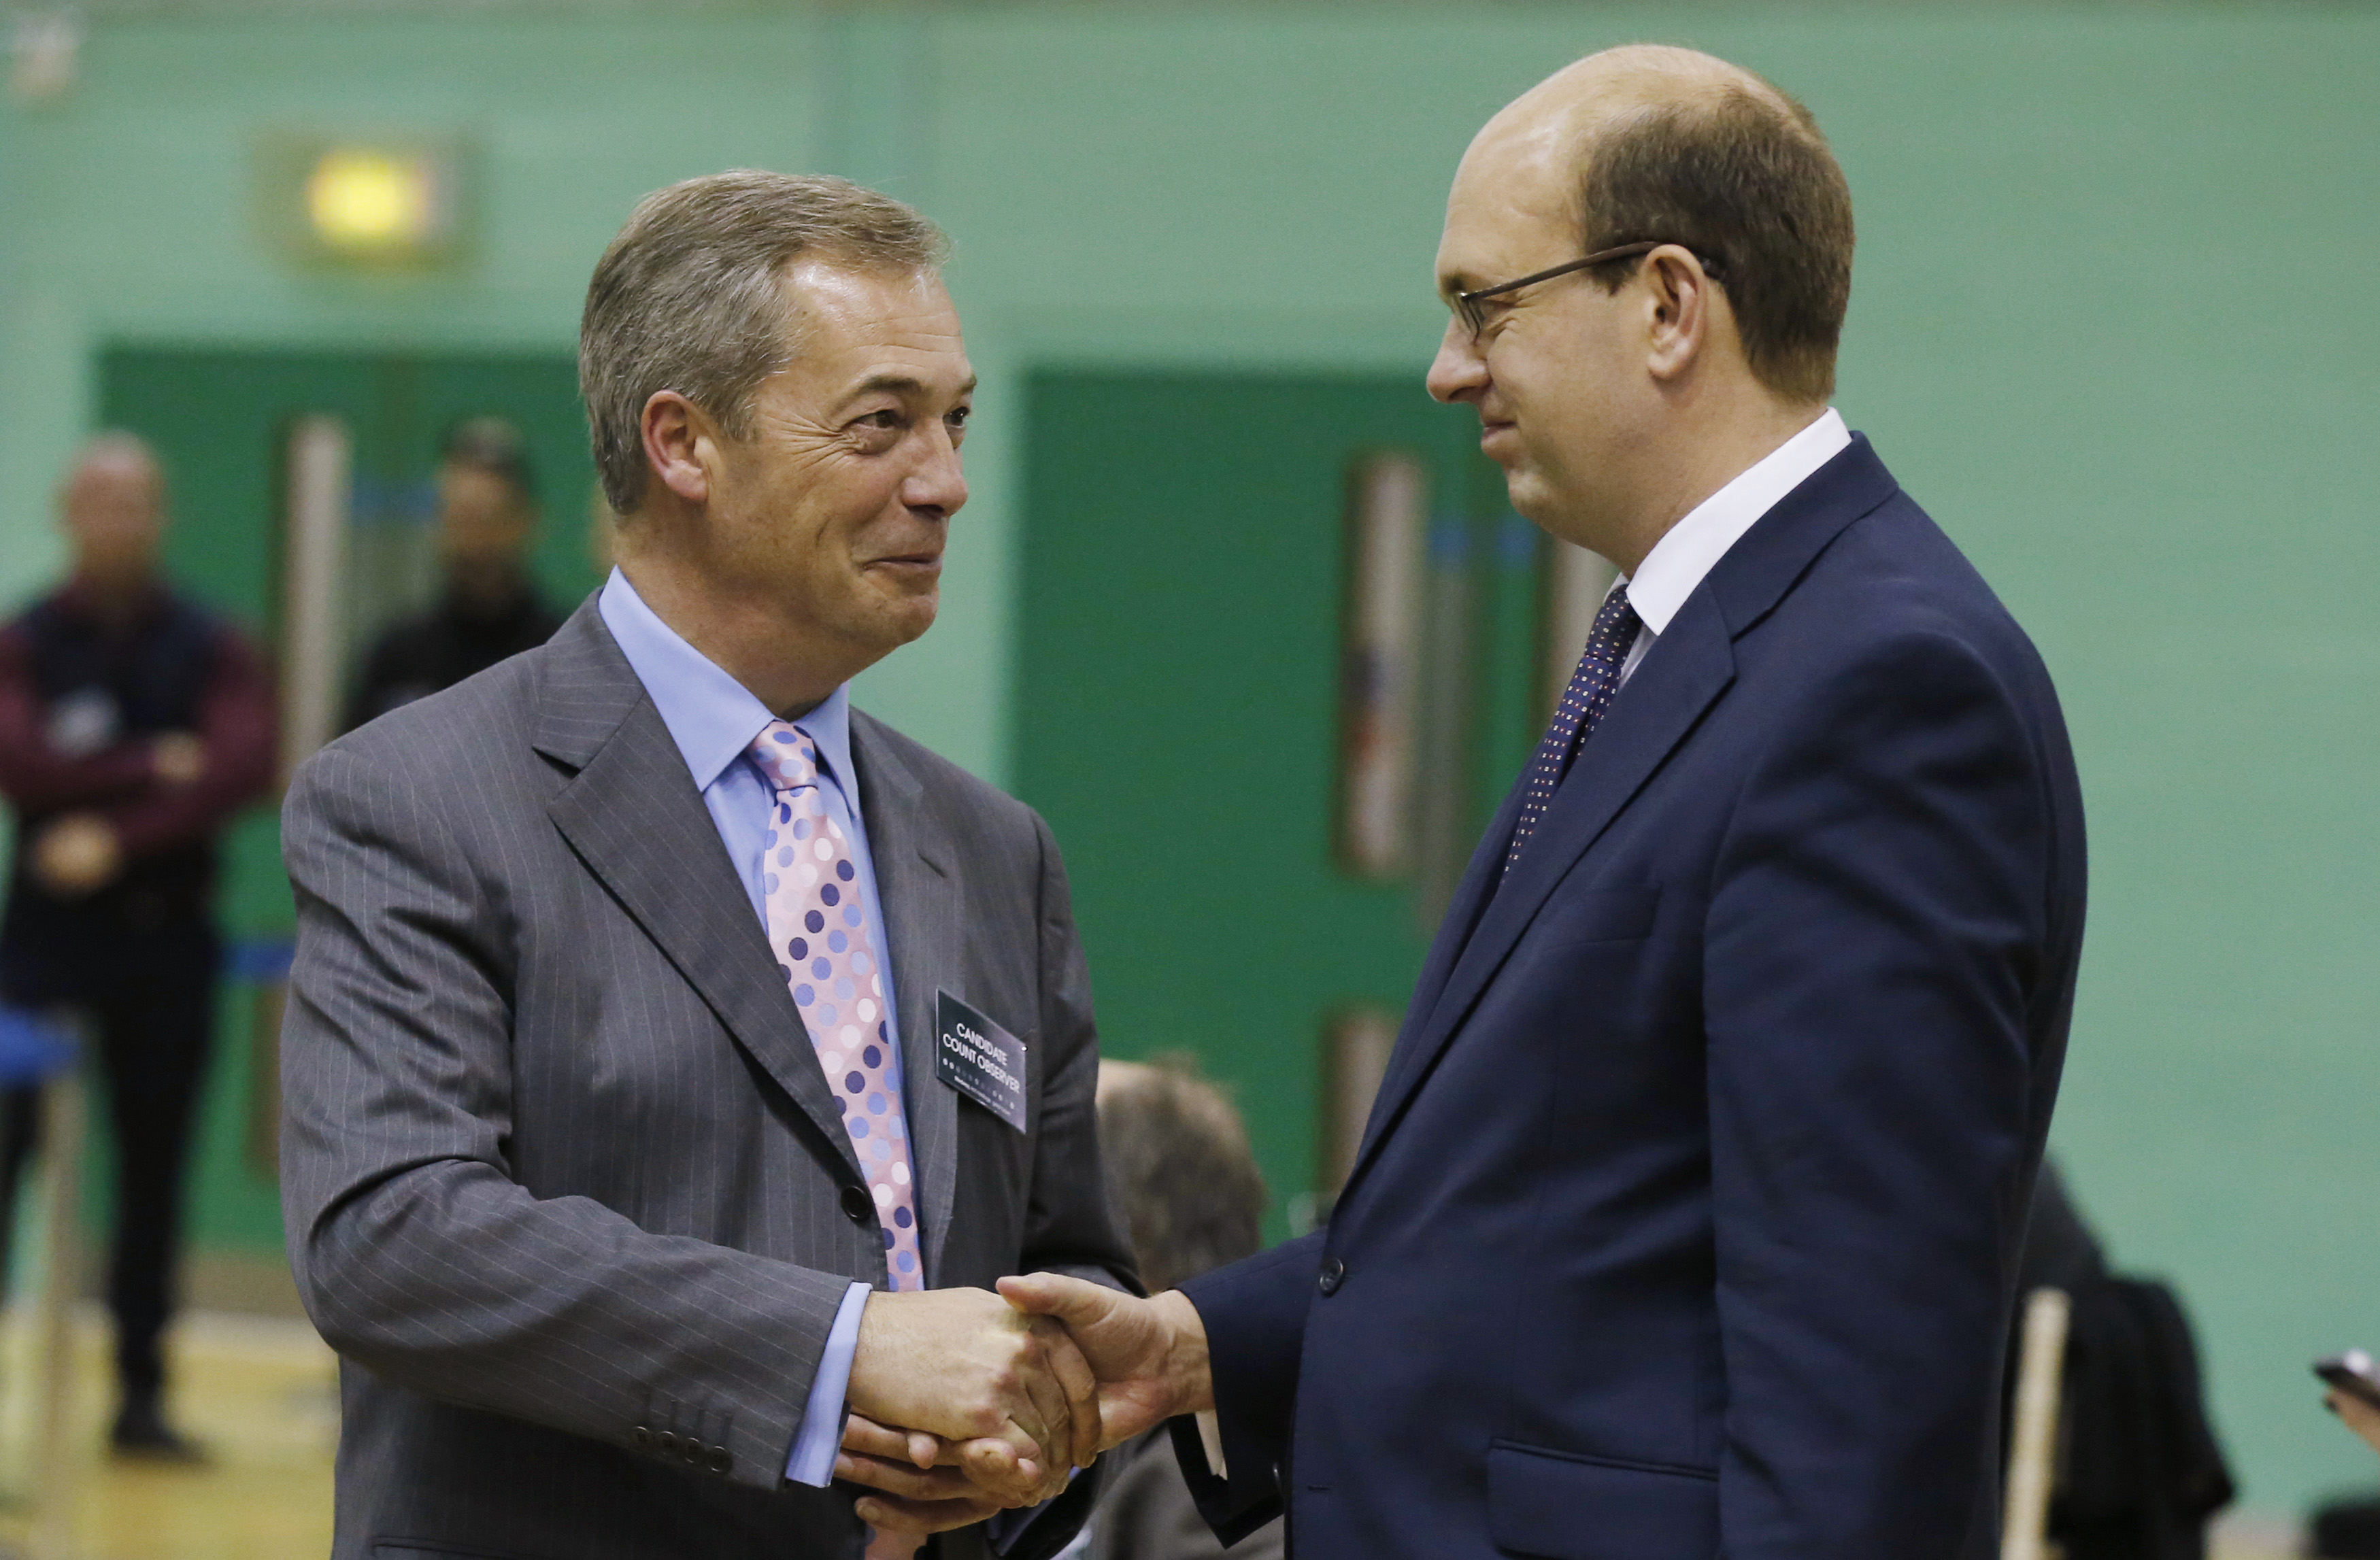 Nigel Farage, left, leader of the U.K. Independence Party, shakes hands with Mark Reckless, the former Conservative Party MP for Rochester and Strood, during the by-election ballot count at Medway Park in Gillingham, England, on Nov. 21, 2014